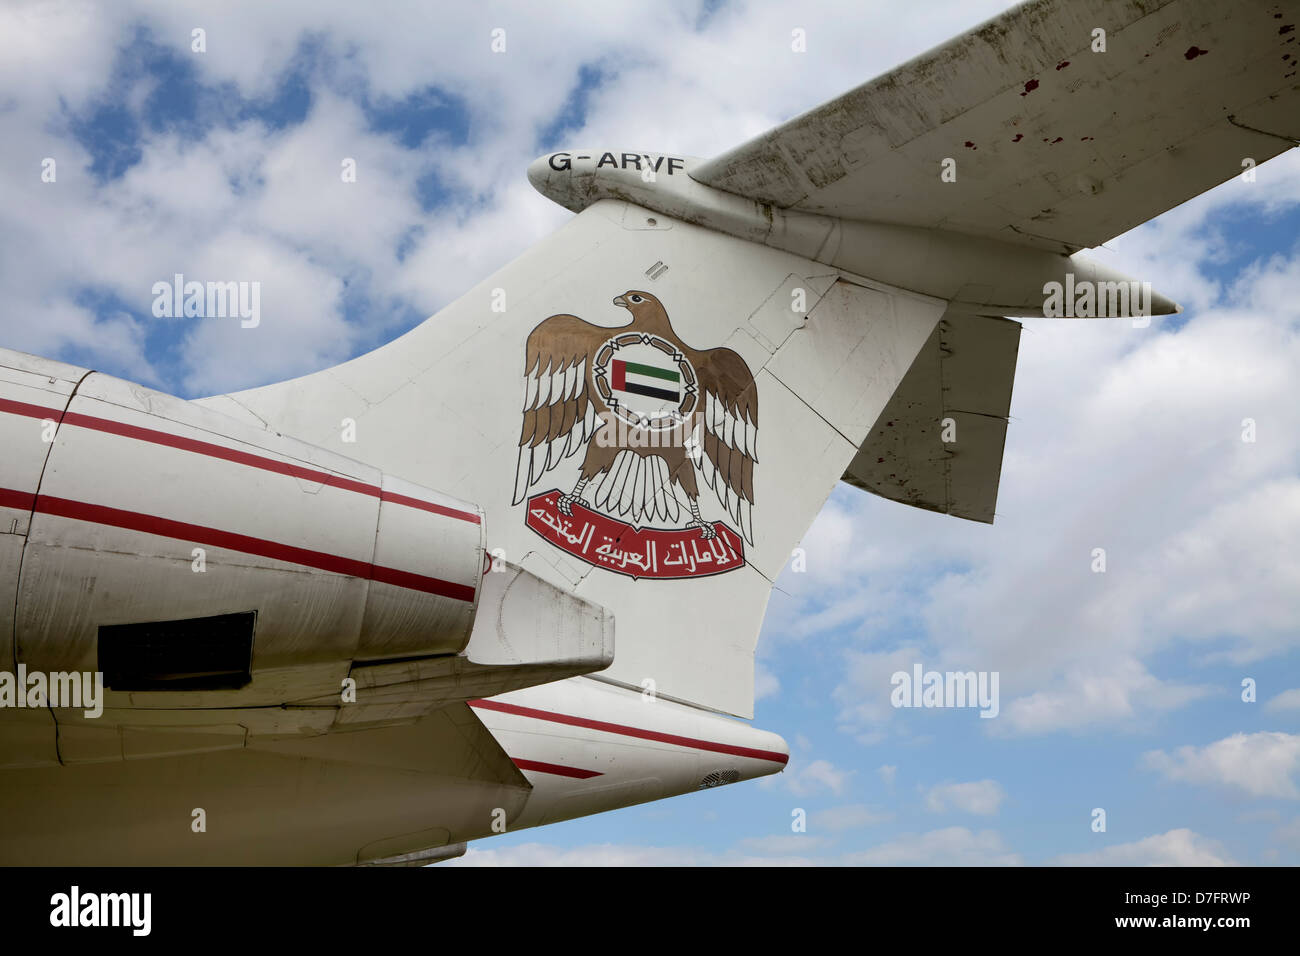 Vickers VC10, a long-range British airliner, United Arab Emirates, UAE, Aircraft Collection Hermeskeil, Germany, - Stock Image